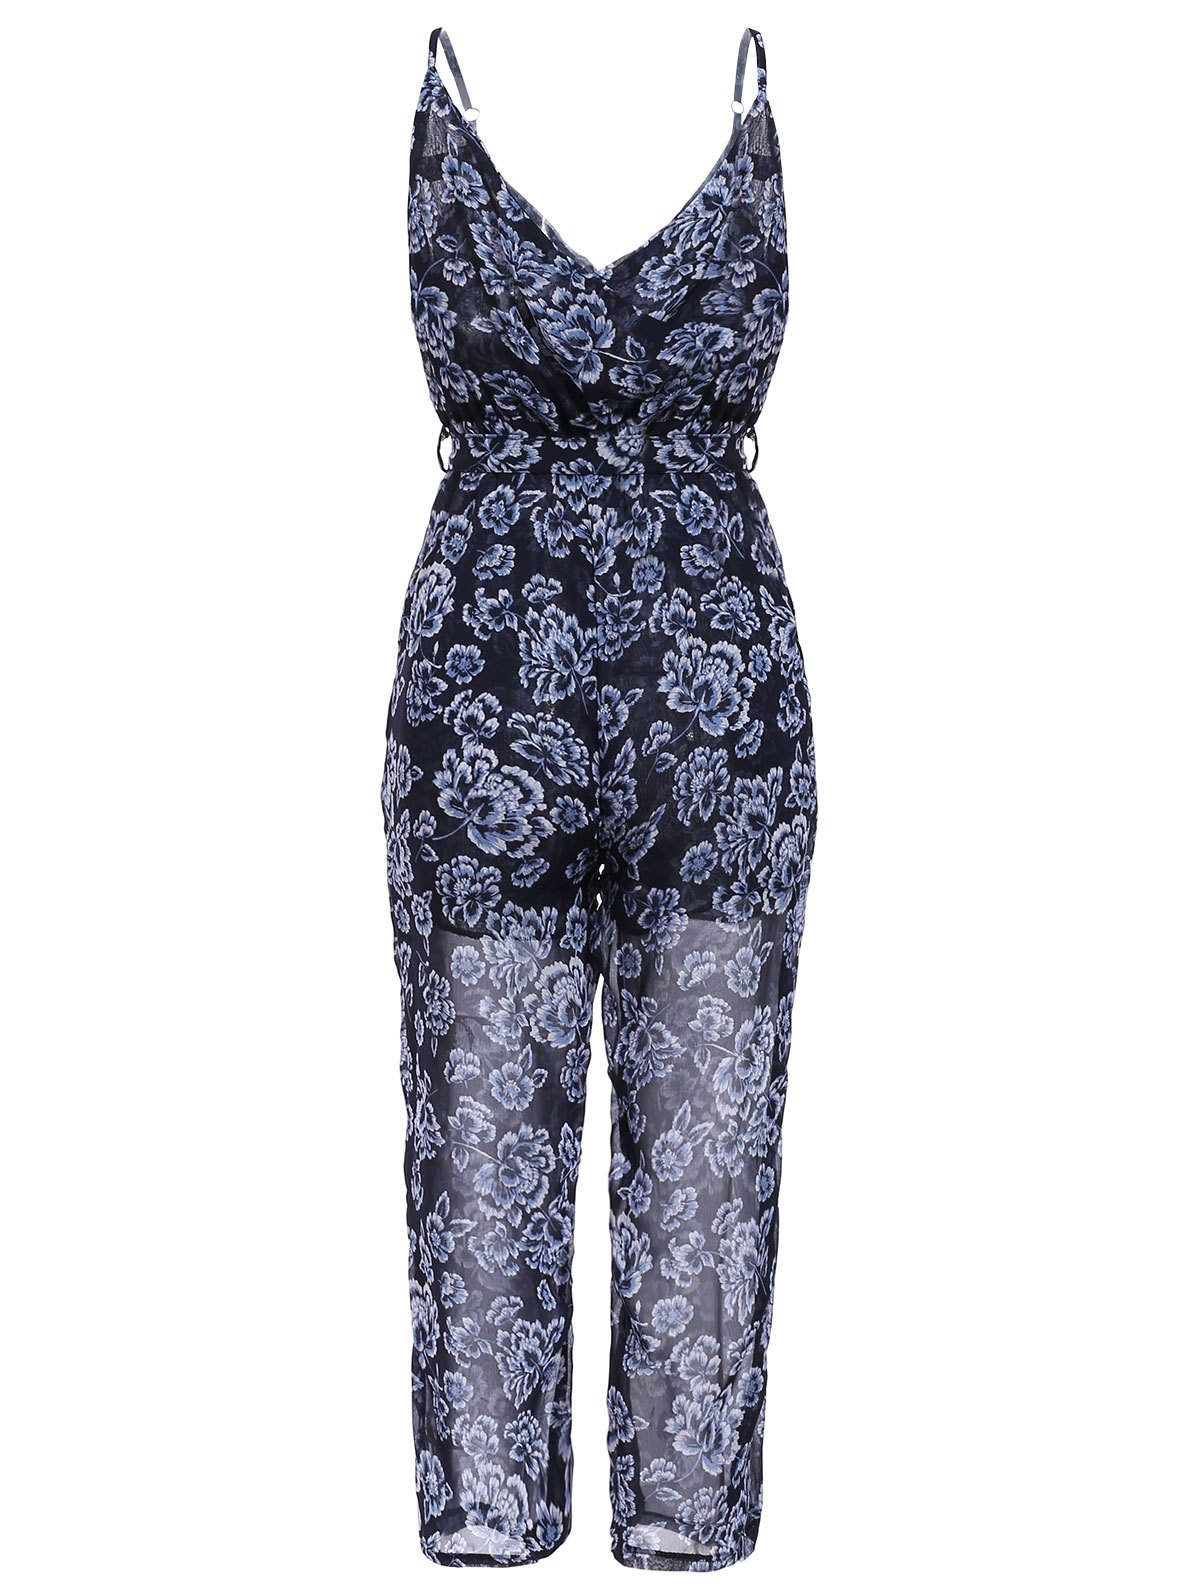 Trendy Floral Print Sleeveless Jumpsuit For Women - COLORMIX ONE SIZE(FIT SIZE XS TO M)